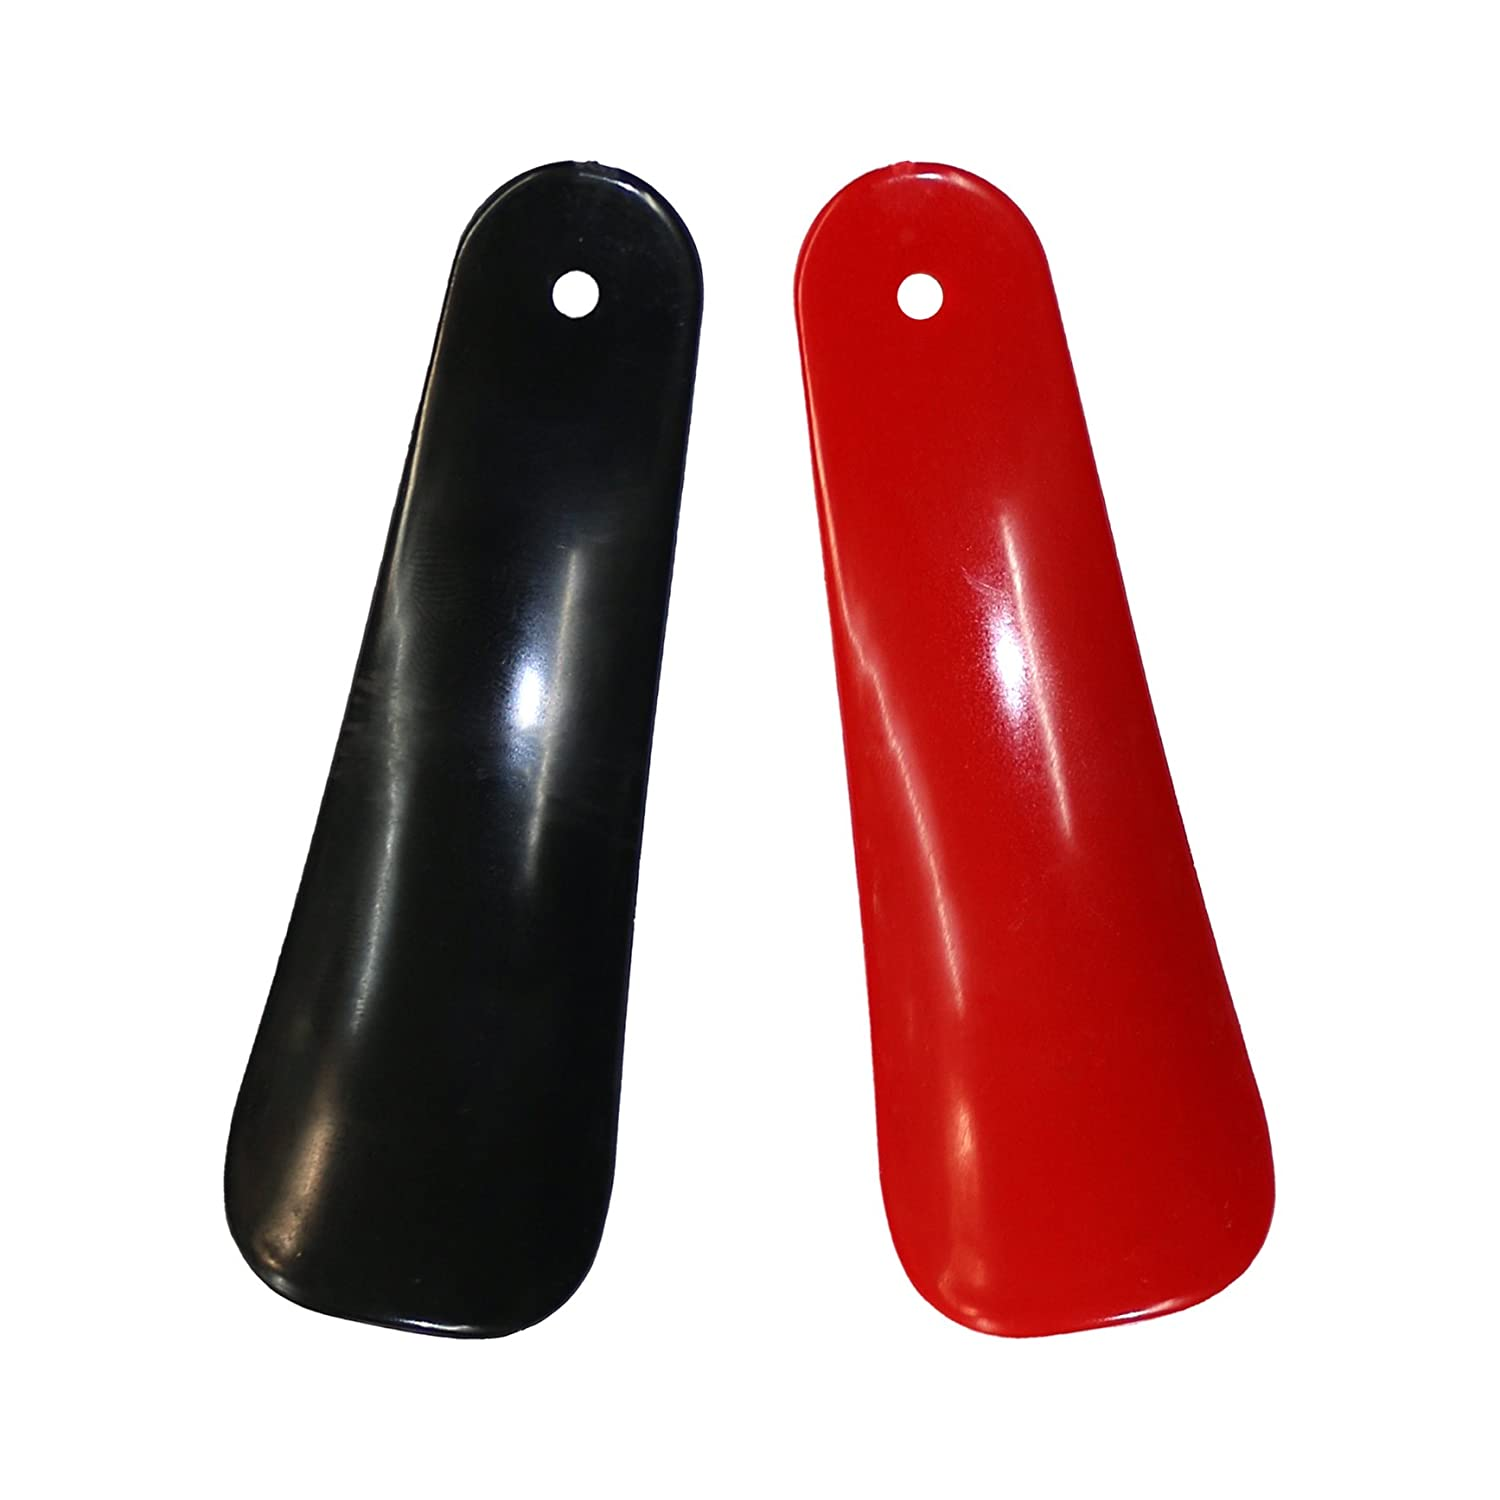 2 x Small 11cm Plastic Shoe Horns with Hanging Hole - Black & Red